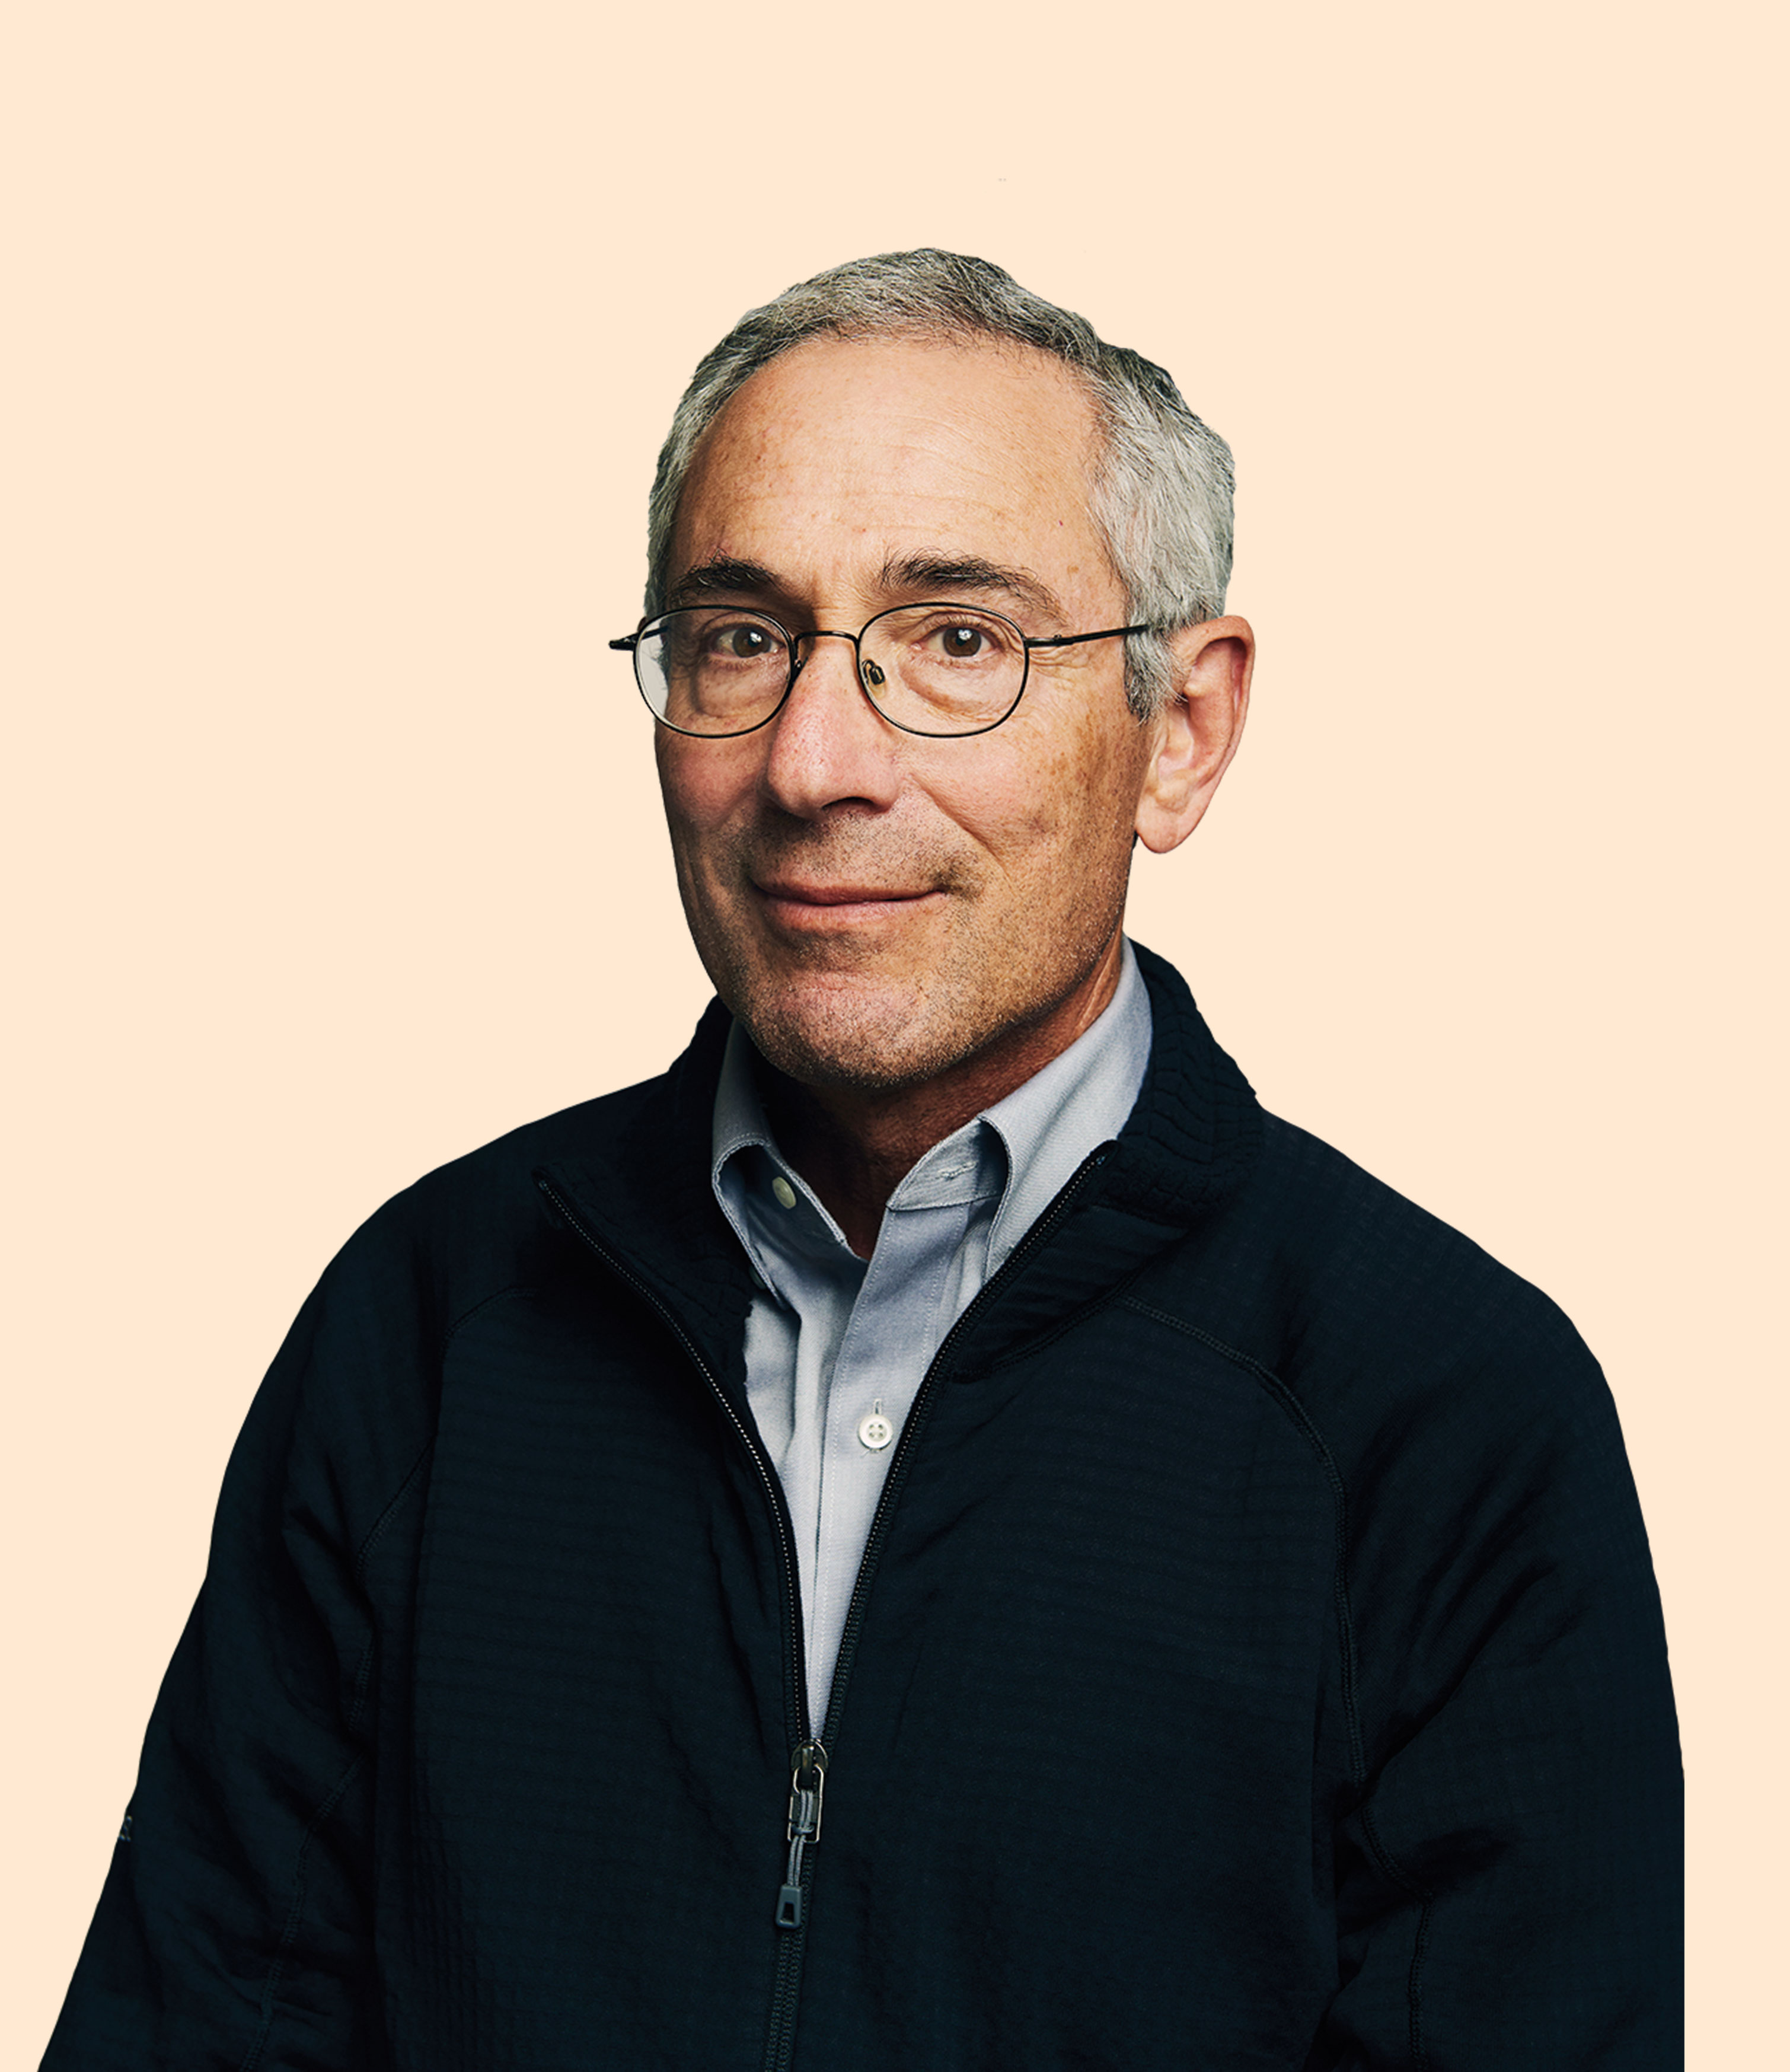 Cofounder Tom Insel, a psychiatrist and former director of the National Institute of Mental Health.